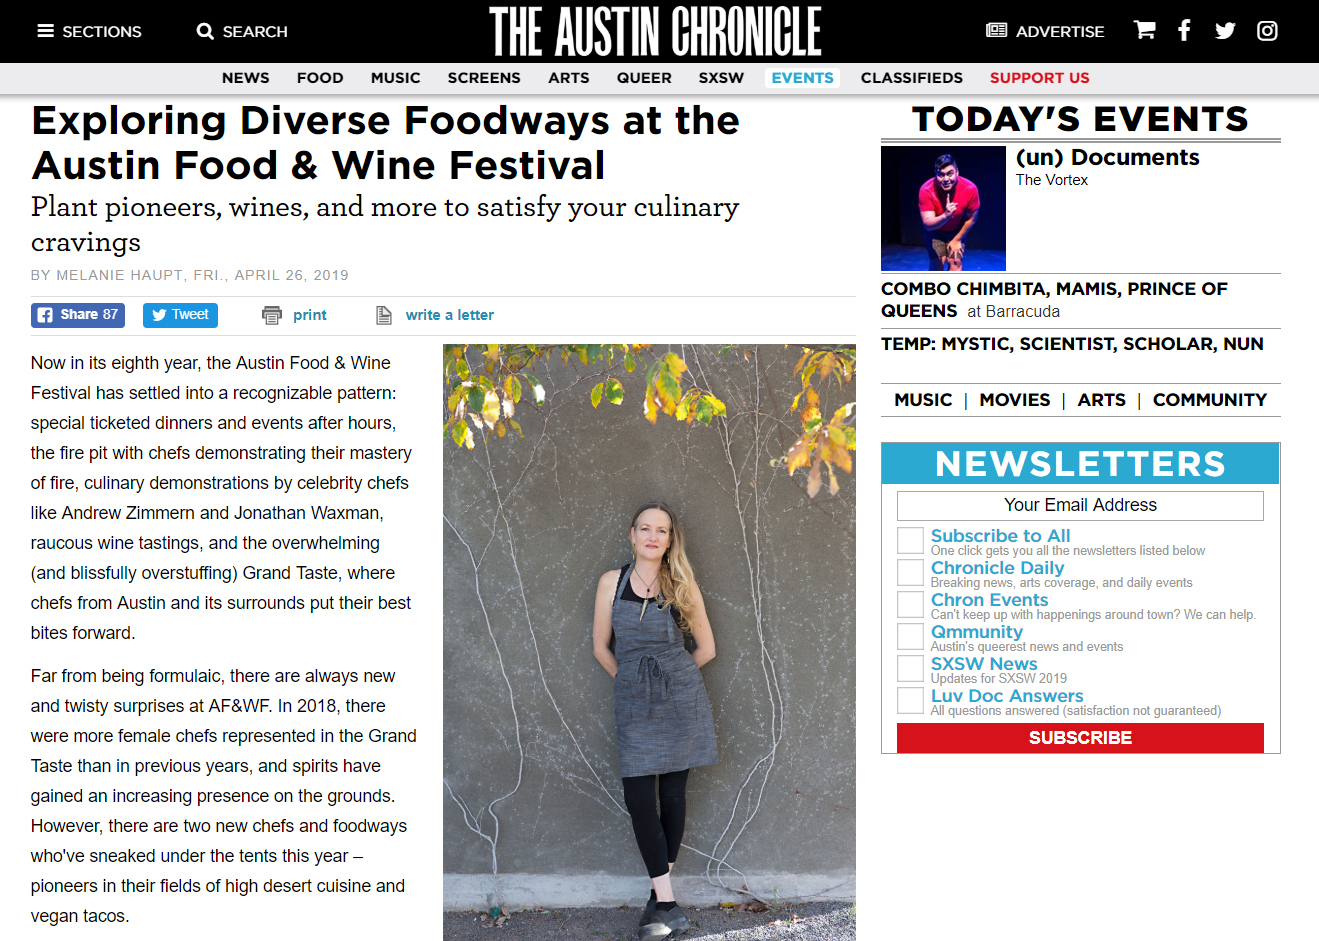 The Austin Chronicle - An interview with Executive Chef/Owner Alex Gates was featured in the April 26th issue of the Austin Chronicle prior to her participation in the 2019 Austin Food & Wine Festival Click here to read the interview.